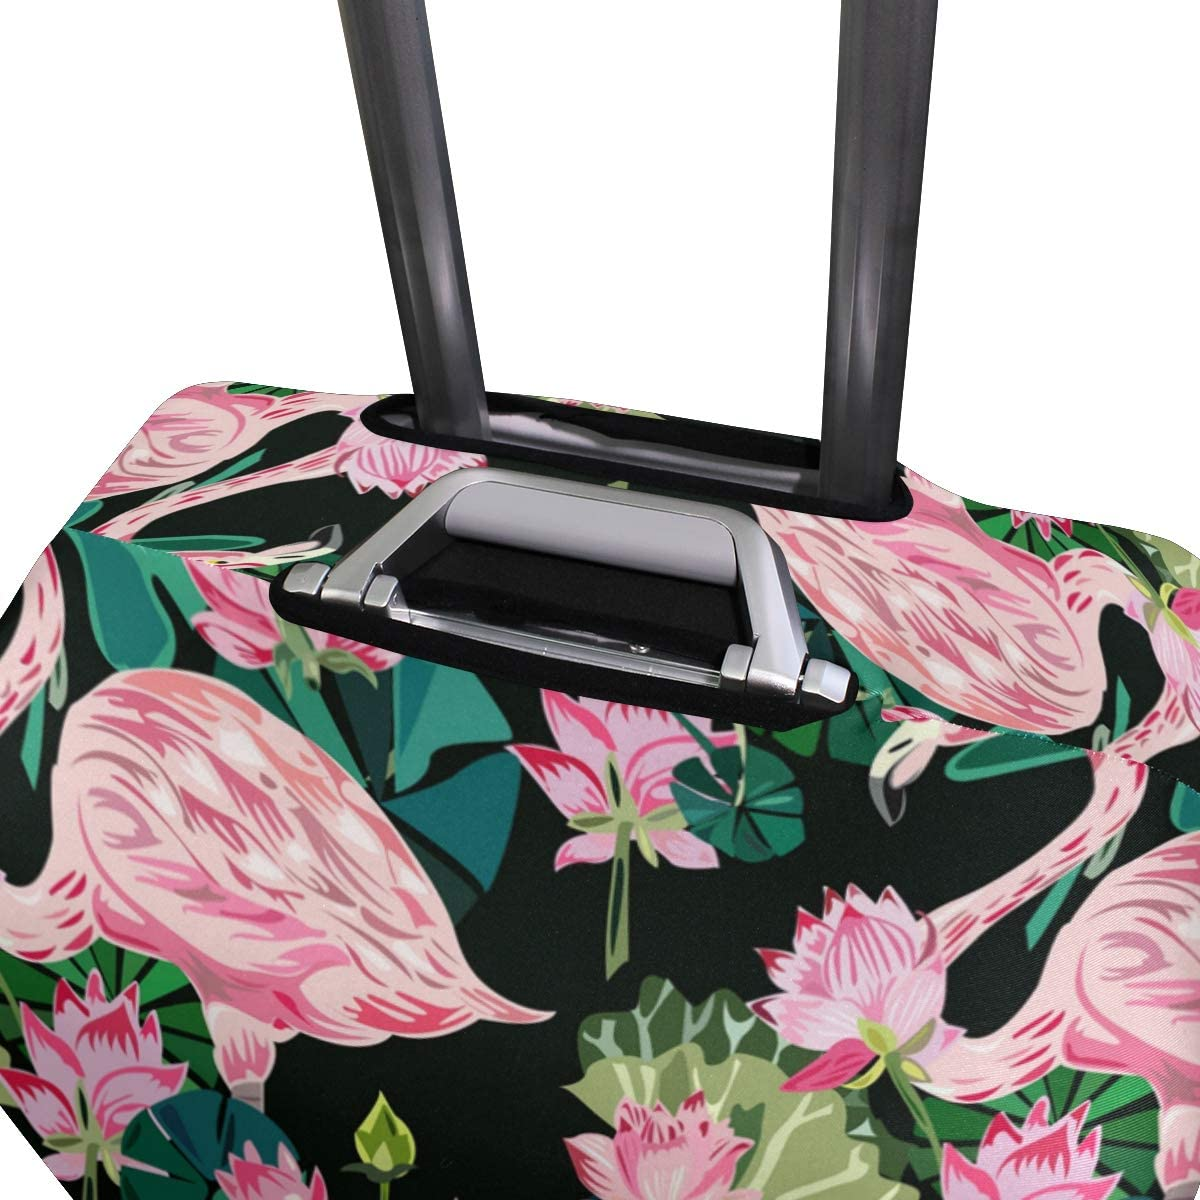 FOLPPLY Flamingo Pattern Luggage Cover Baggage Suitcase Travel Protector Fit for 18-32 Inch